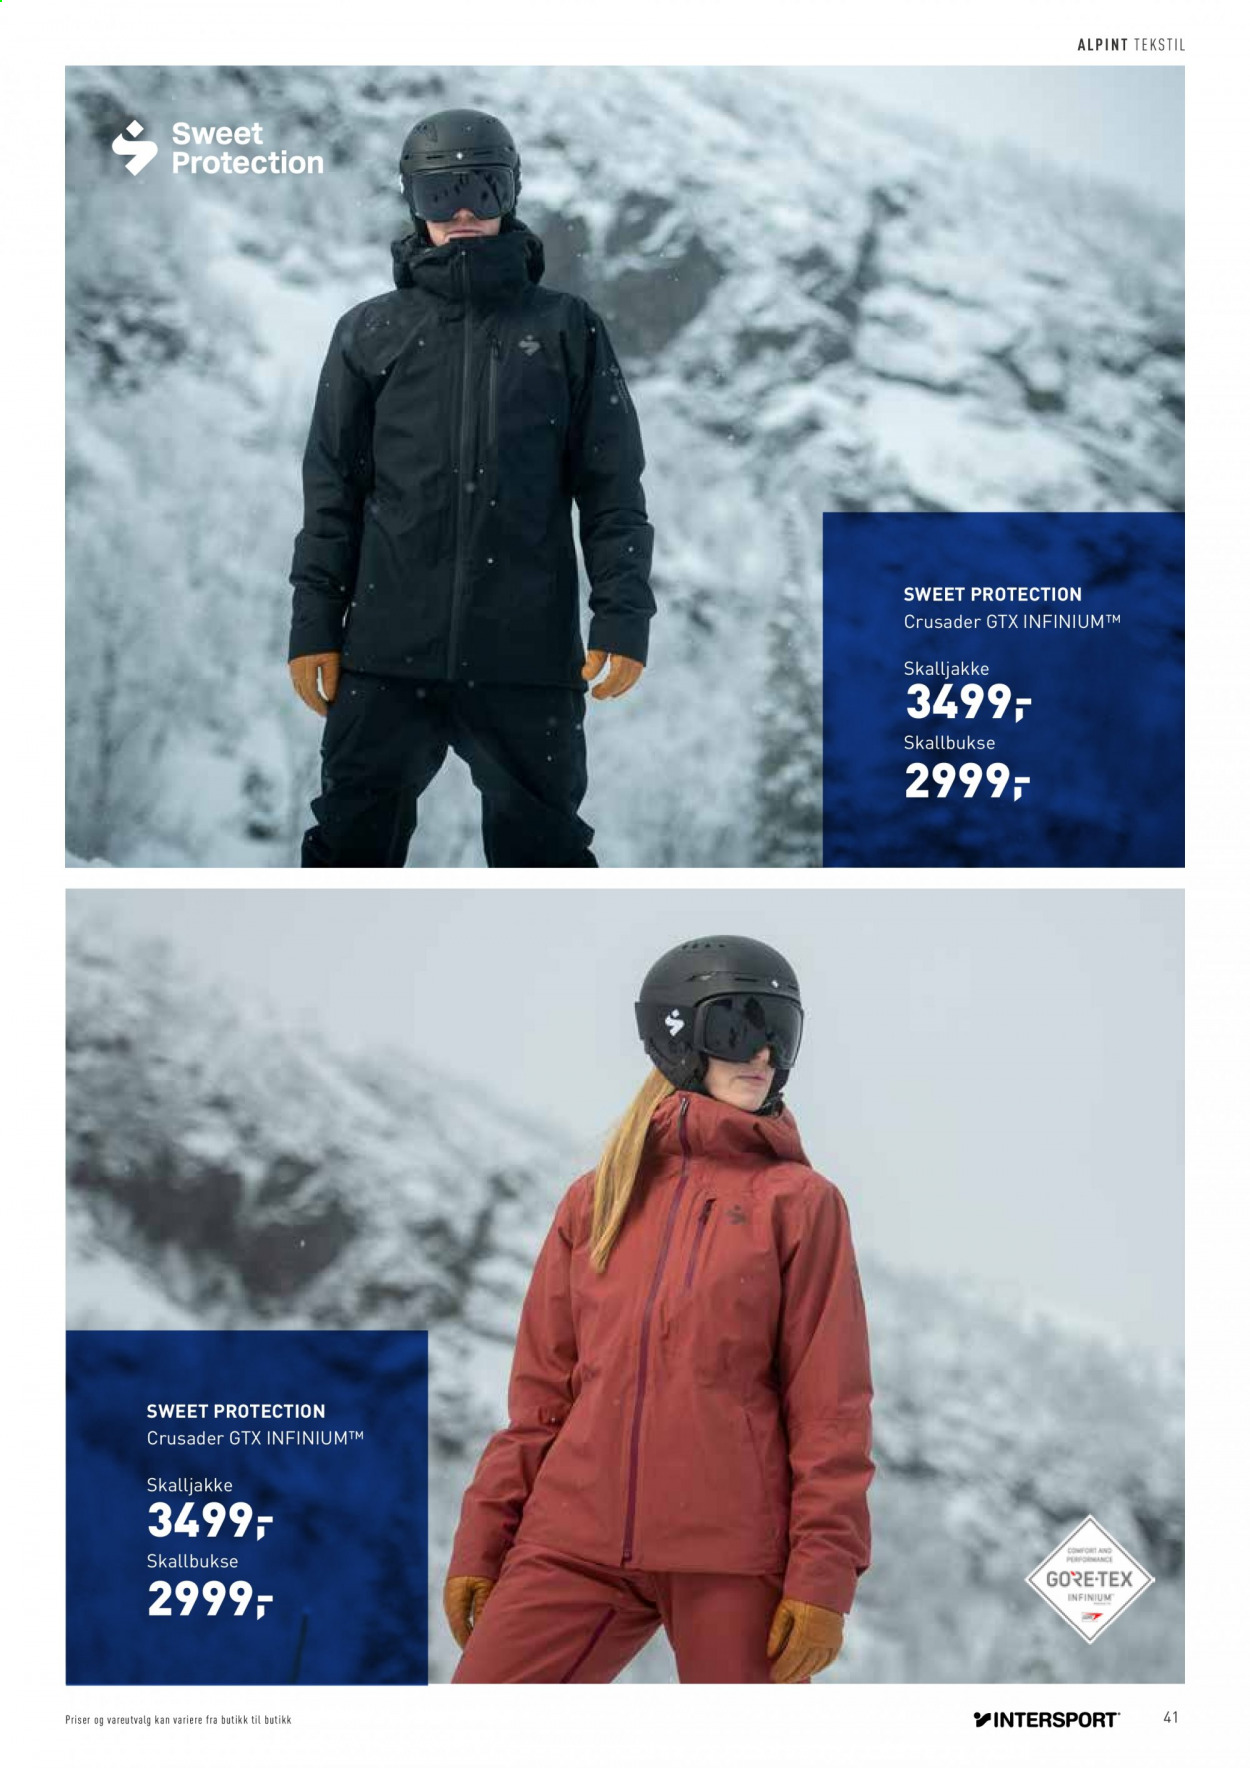 Kundeavis Intersport - 30.11.2020 - 06.04.2021. Side 41.